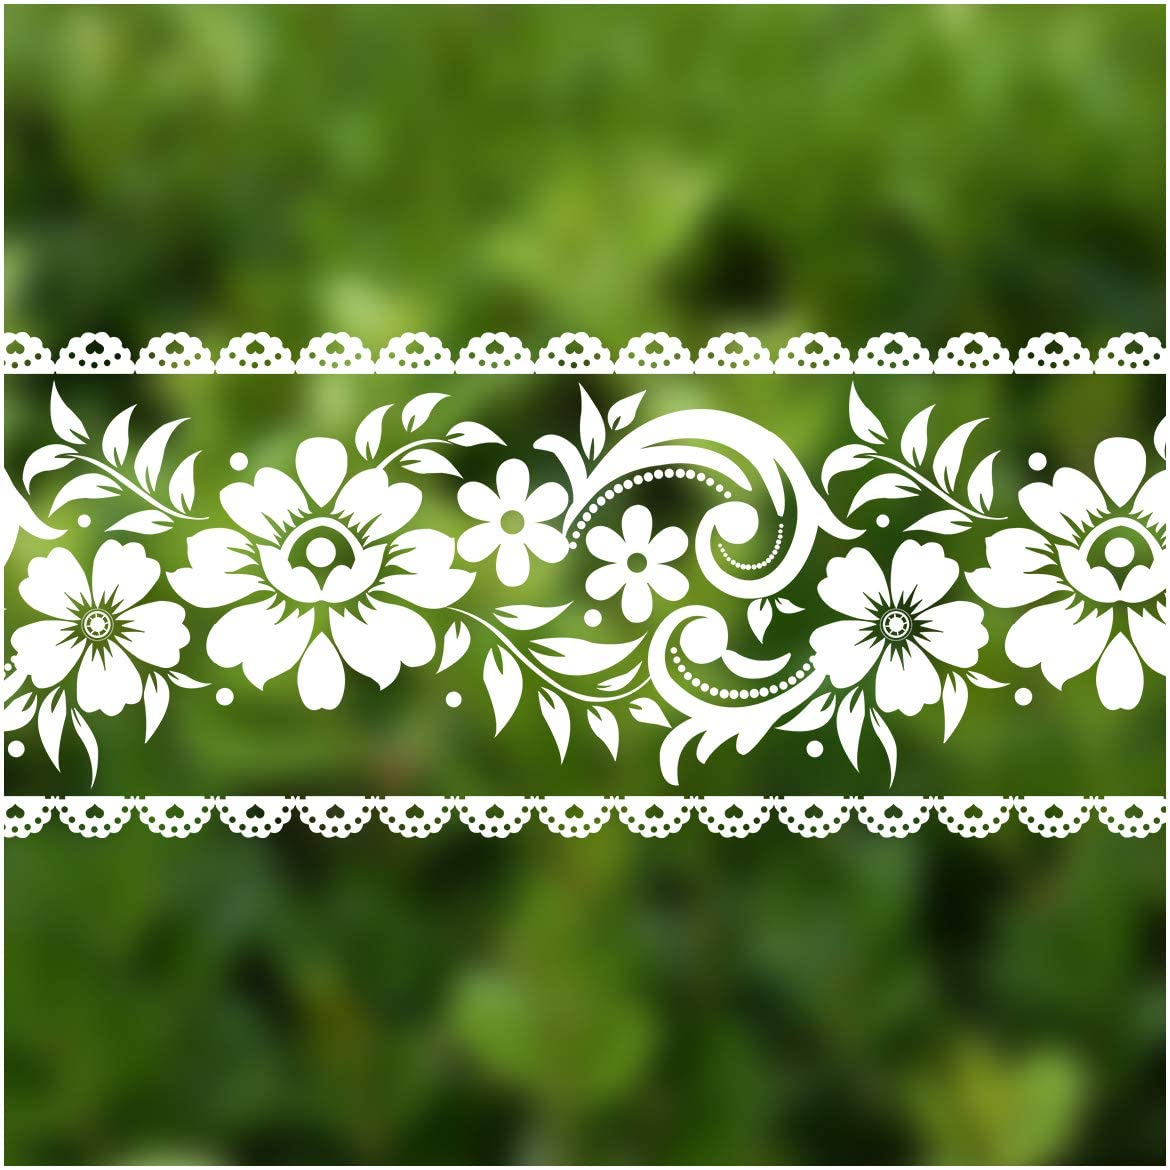 VEELIKE Lace Border Window Sticker Transparent White Removable Peel and Stick Wallpaper Wall Waist Line Sticker for Wall Glass Window Door Home Decor DIY (4 inch×32.8 ft)